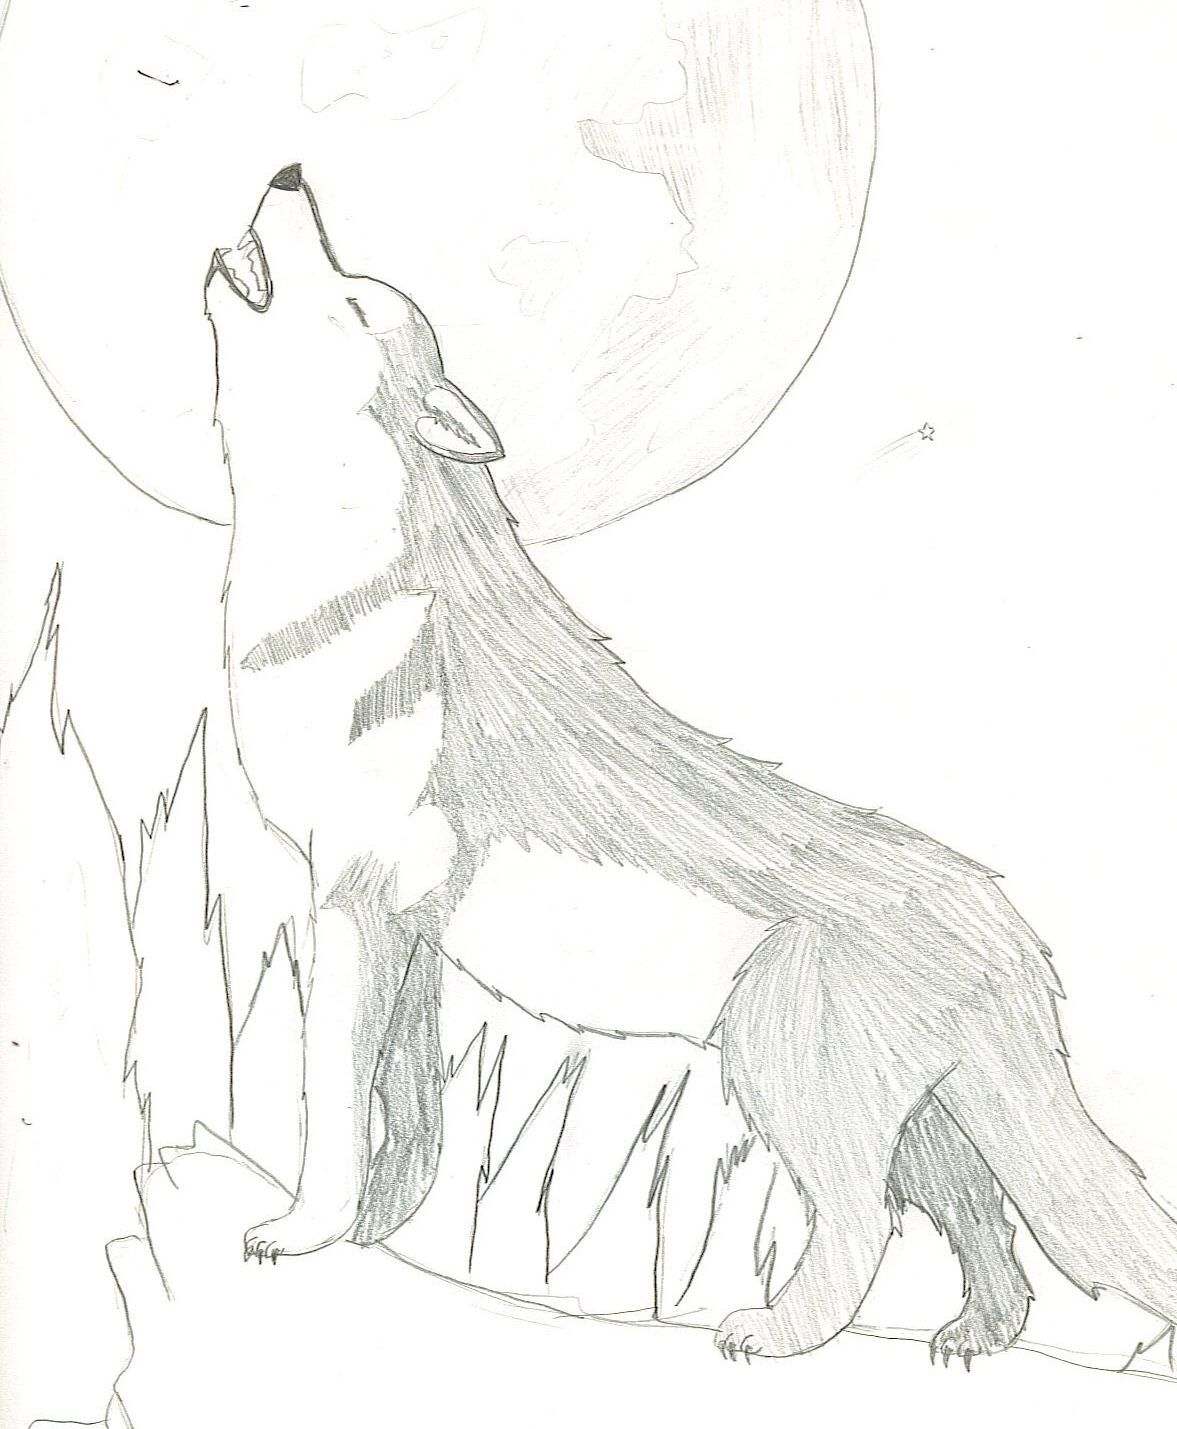 Howling Wolf Drawing Wolffaolan C 2014 Feb 13 2011 Wolf Pictures Pictures To Draw Drawings